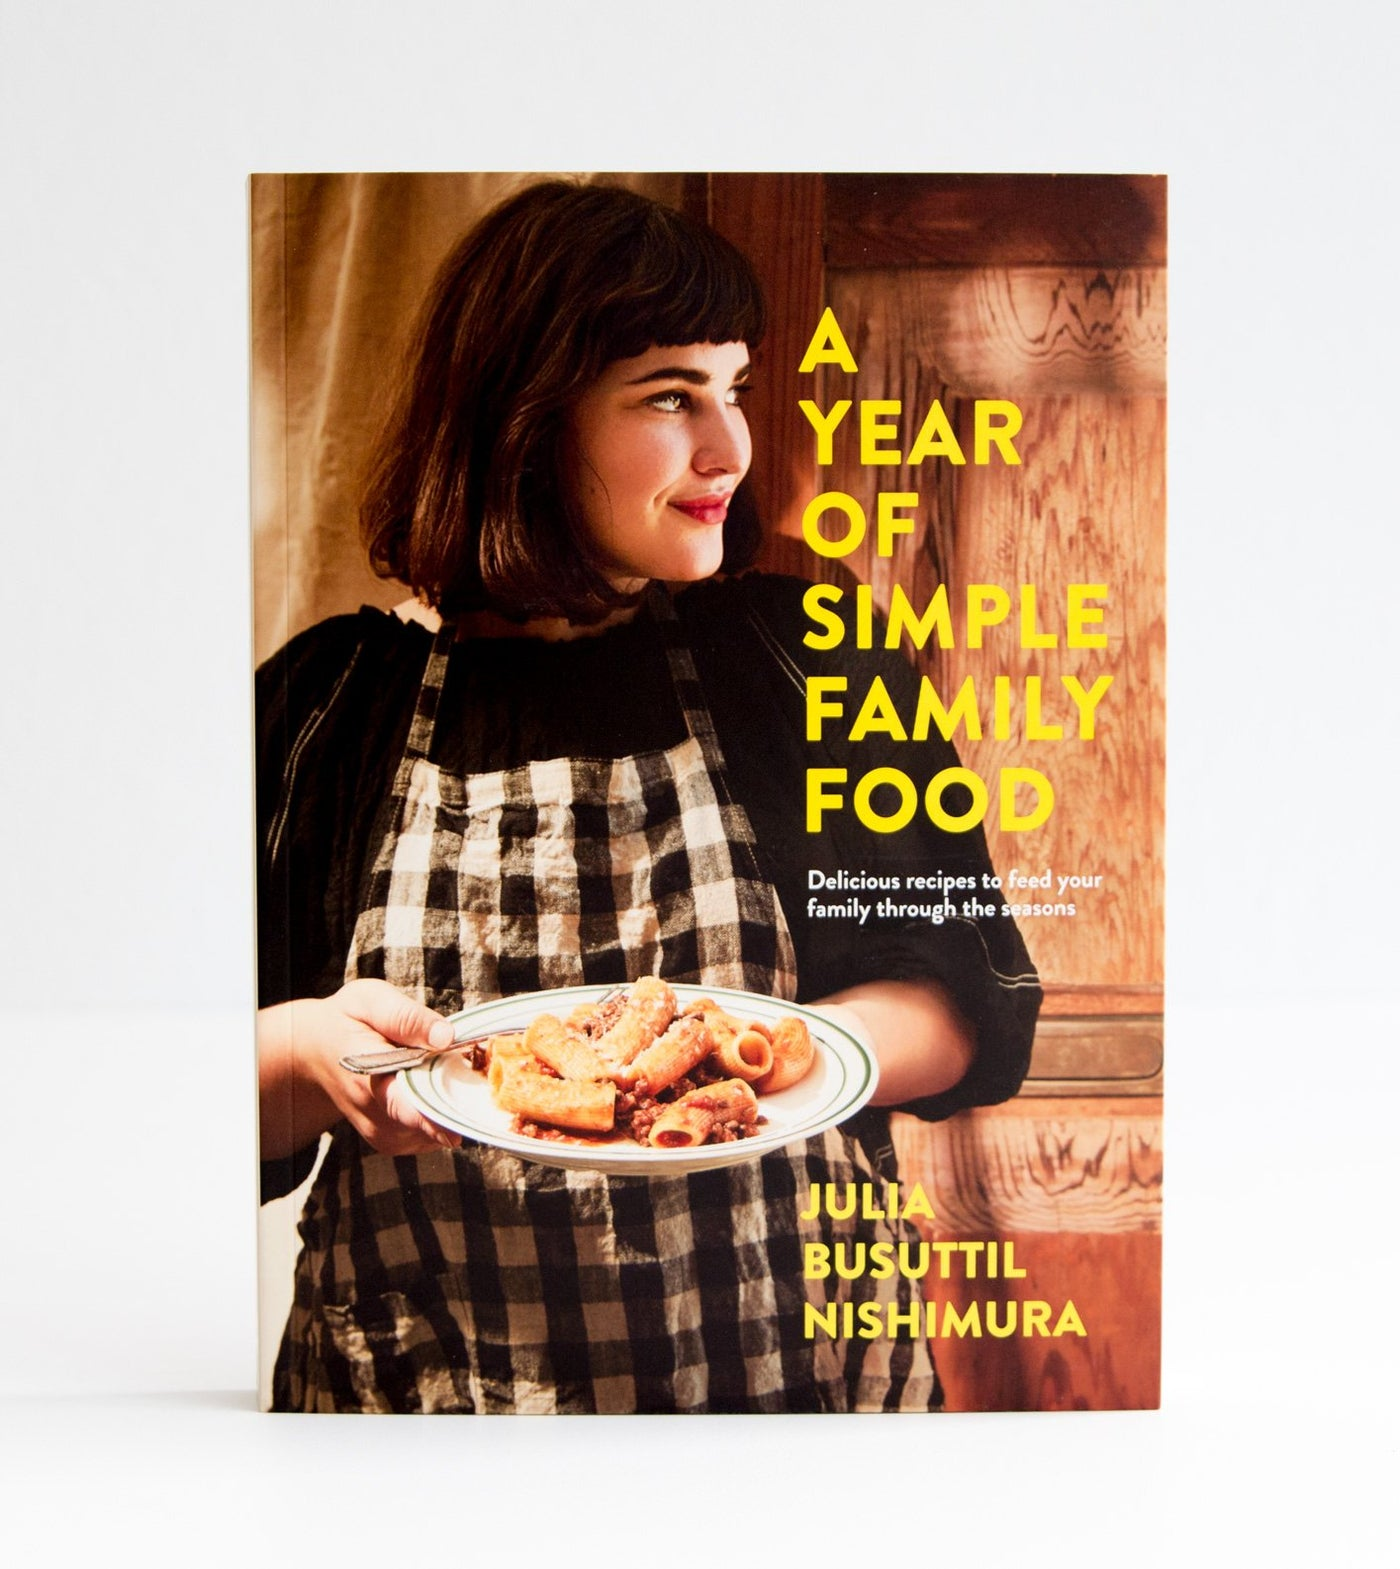 Julia Busuttil Nishimura cookbook, a year of simple family food cookbook, modern Australian food